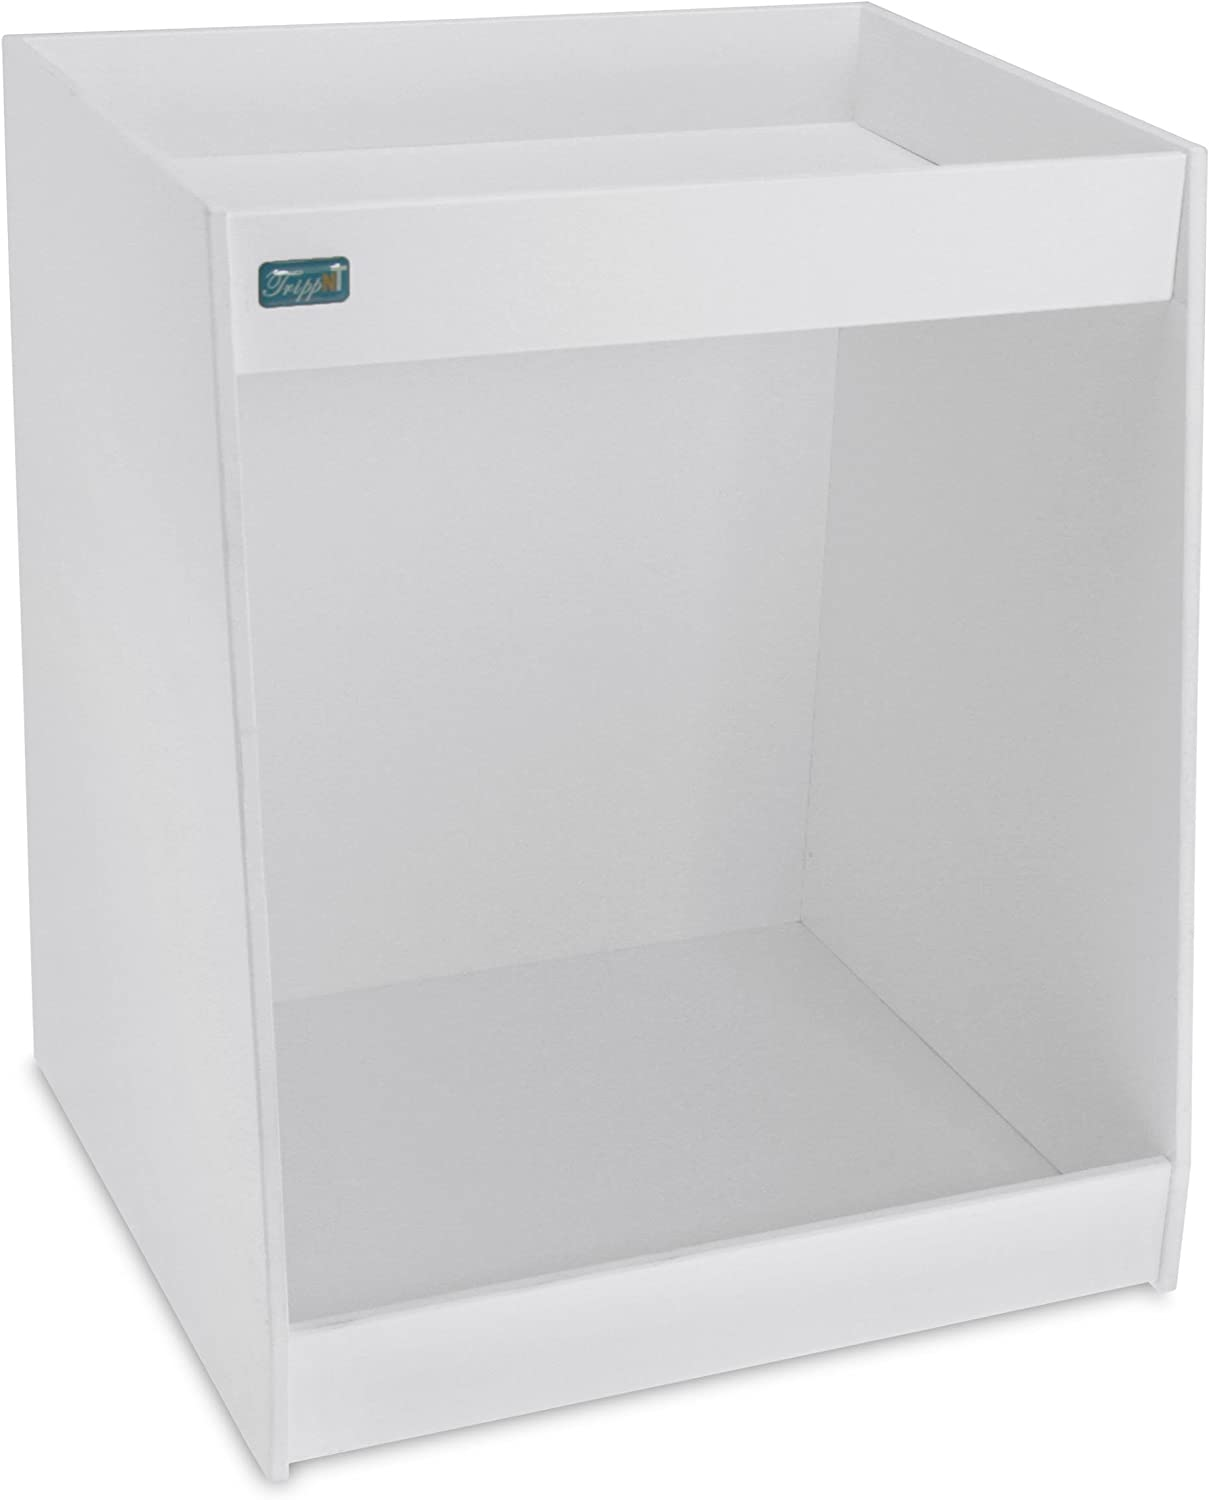 TrippNT 50118 PVC Angled Double Safety Shelves, 12-Inch Width x 14-Inch Height x 9-Inch Depth, White